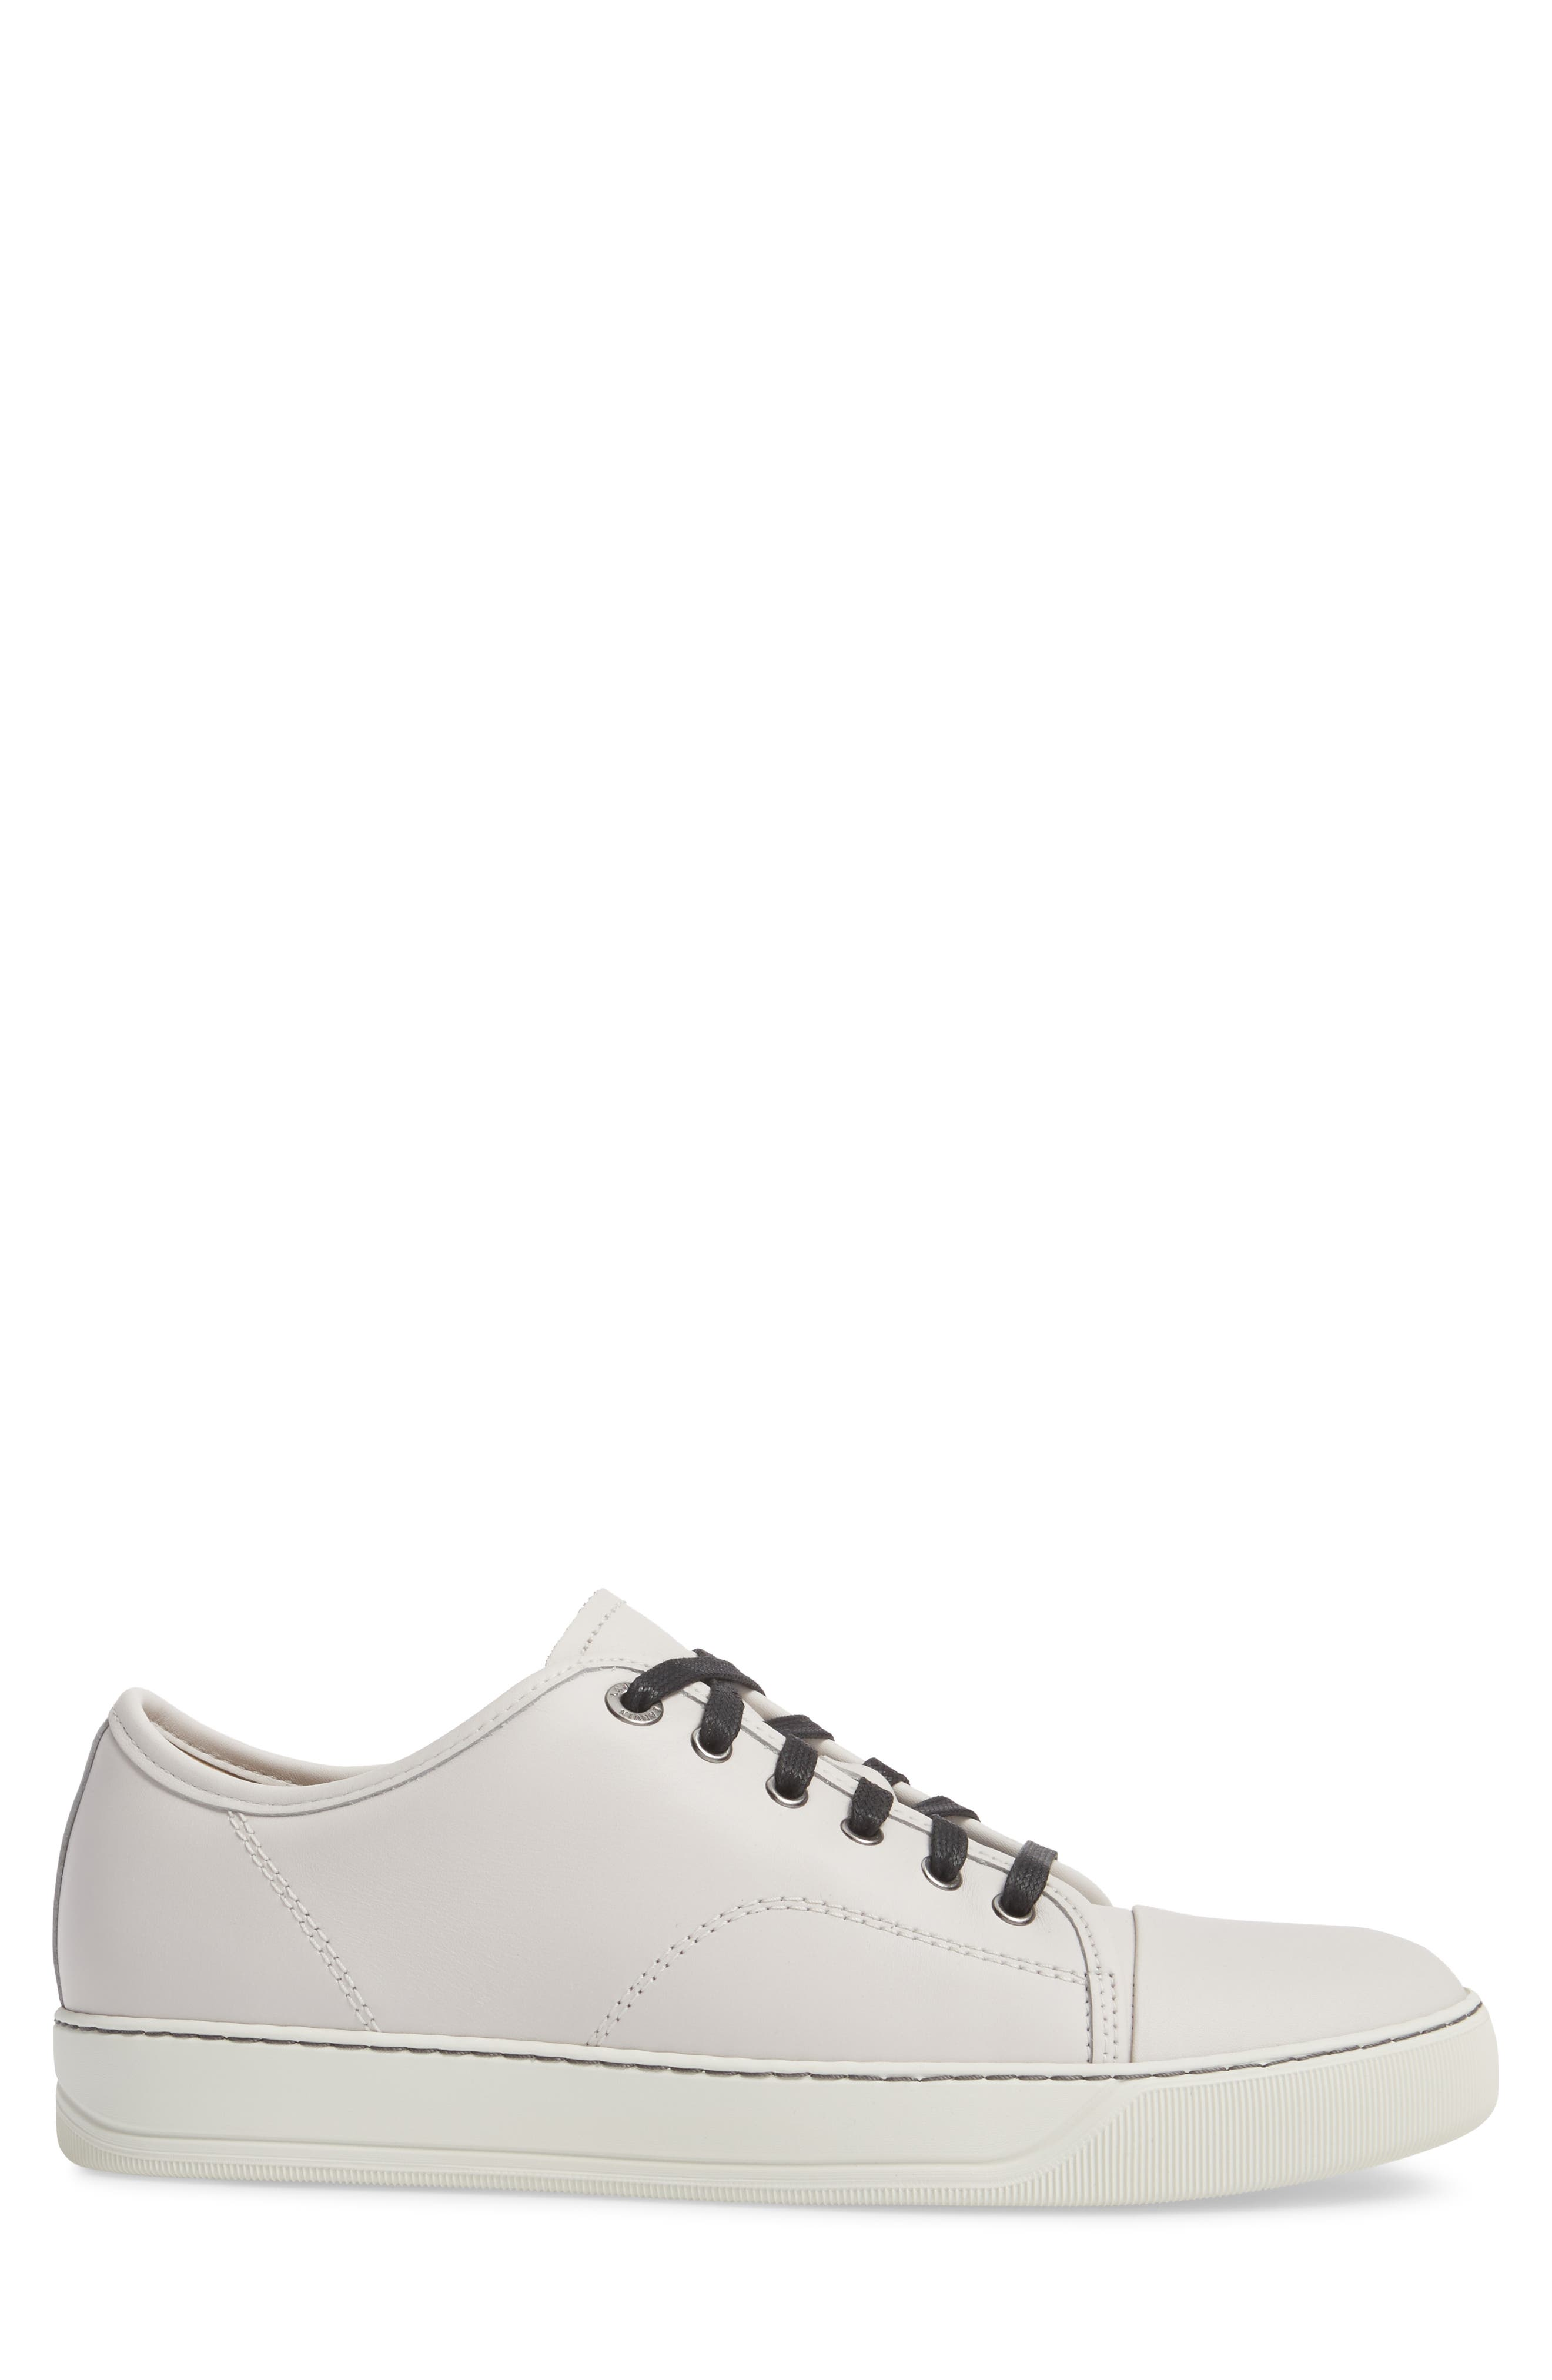 LANVIN,                             Low Top Sneaker,                             Alternate thumbnail 3, color,                             102